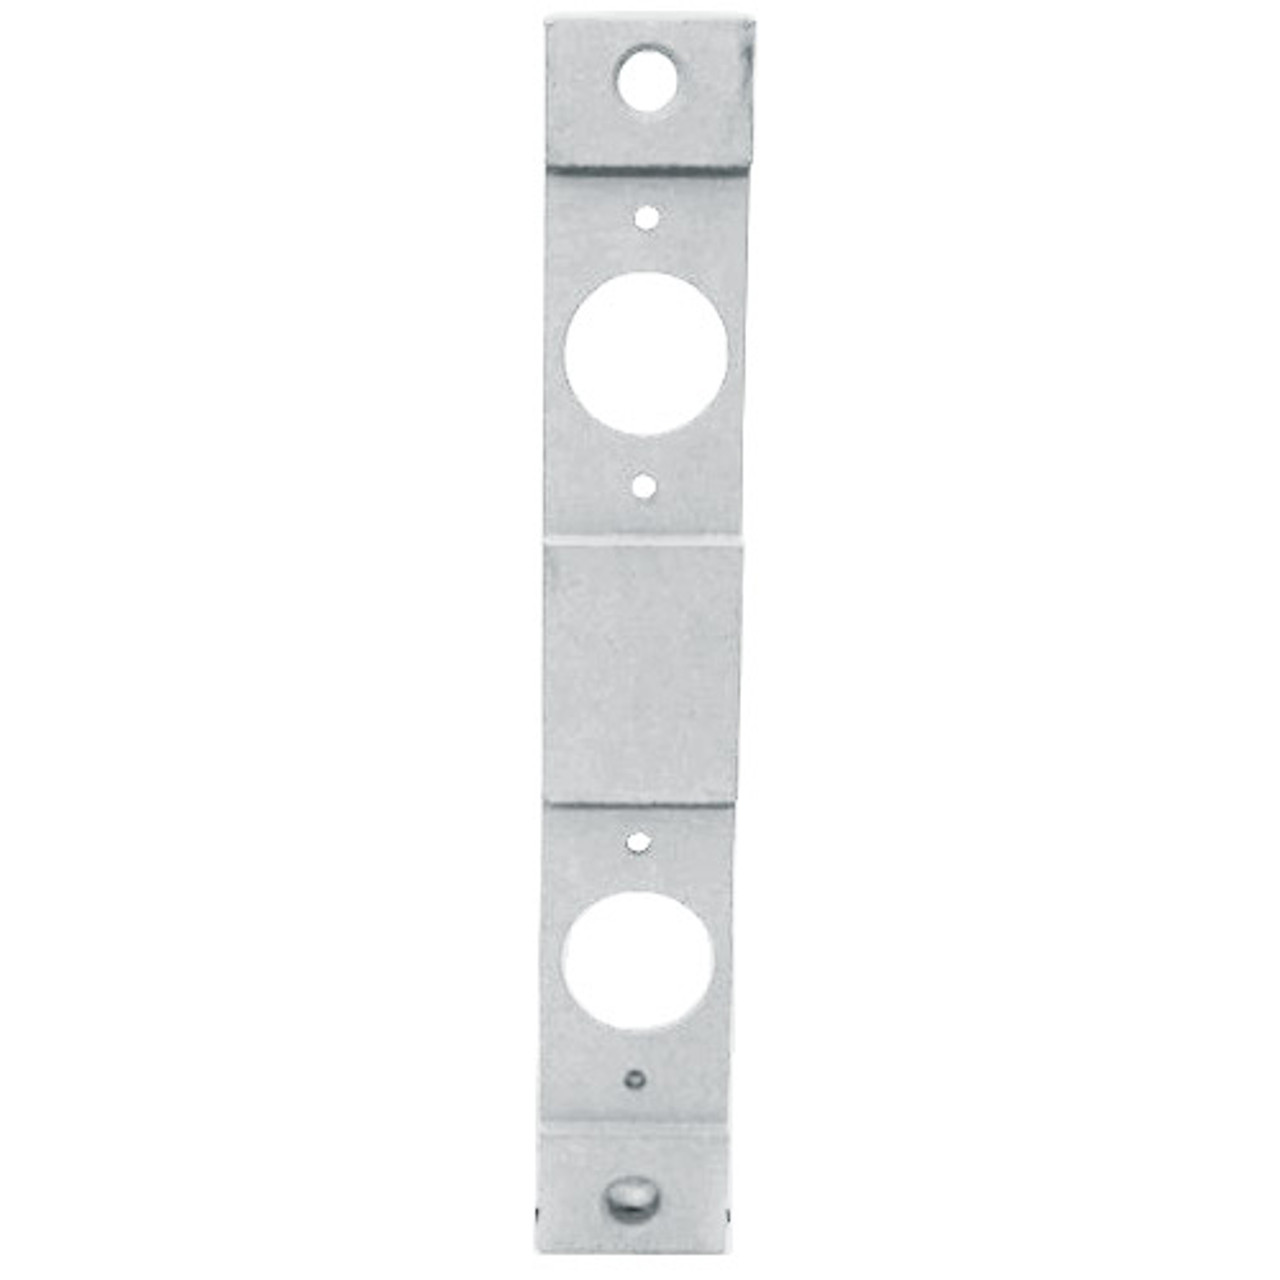 CV-8624-CP Don Jo Mortise Conversion Plate in Chrome Plated Finish